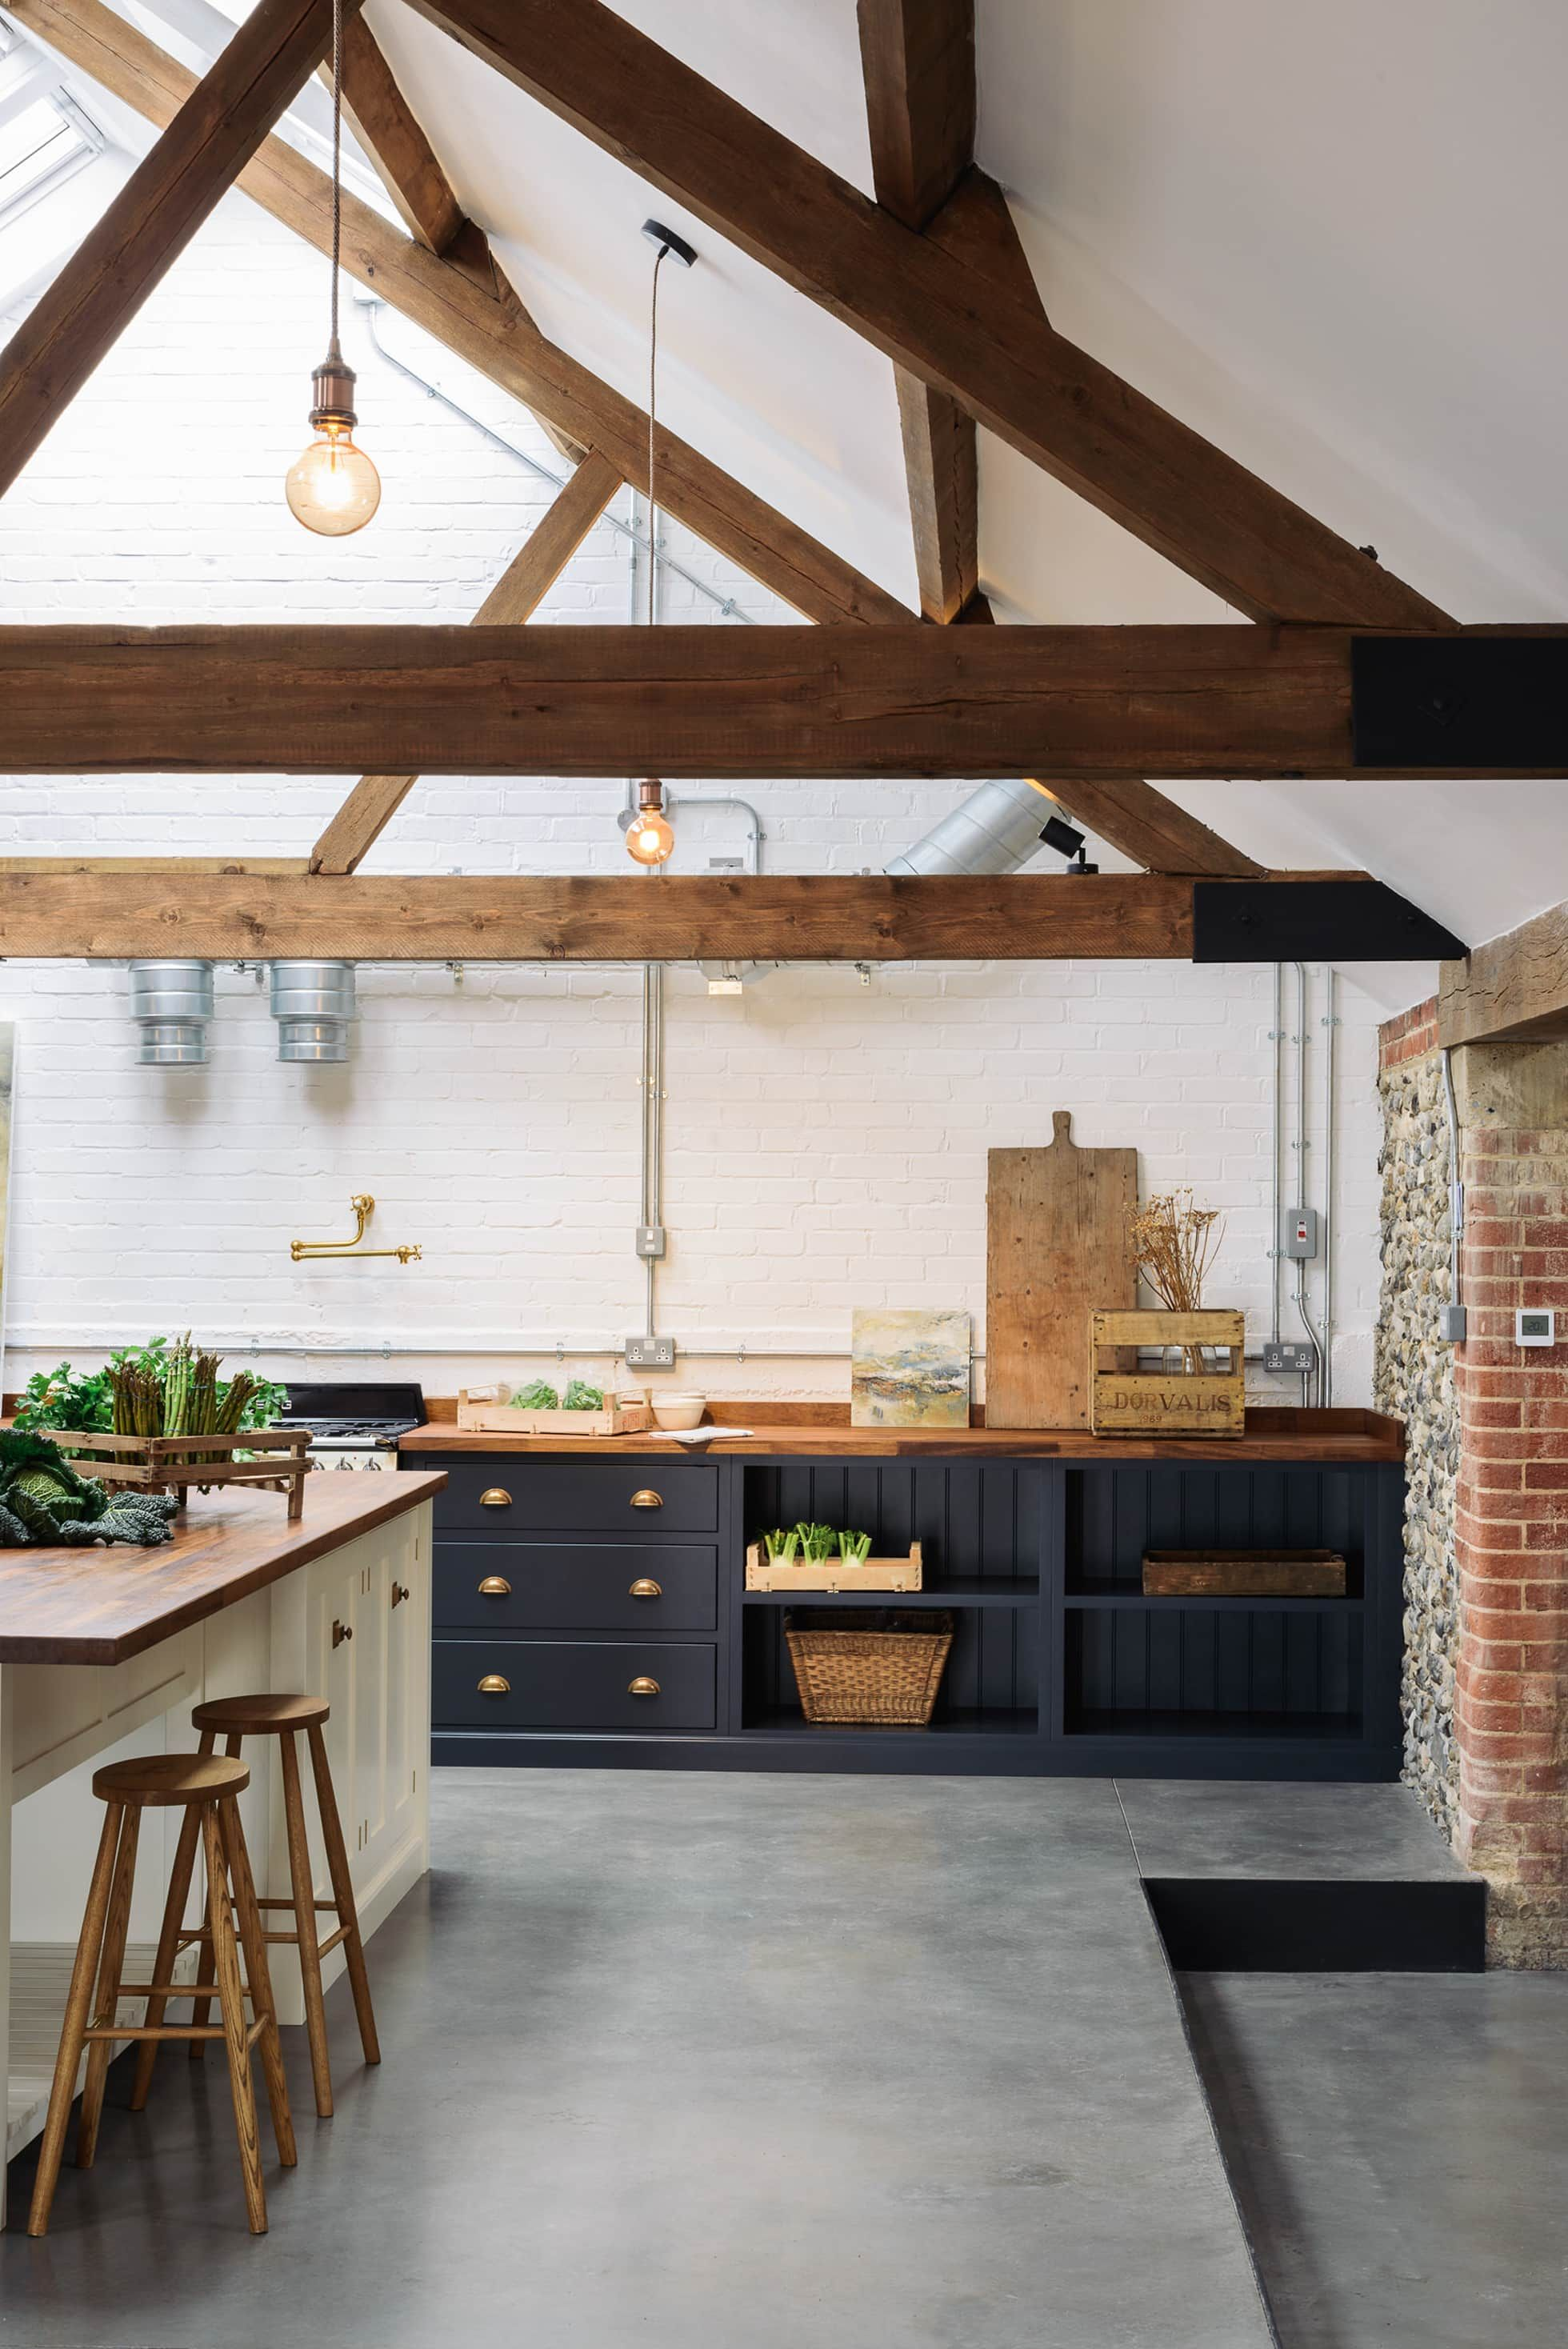 Kitchen Design Norfolk: The Cattle Shed Kitchen, North Norfolk Country Style